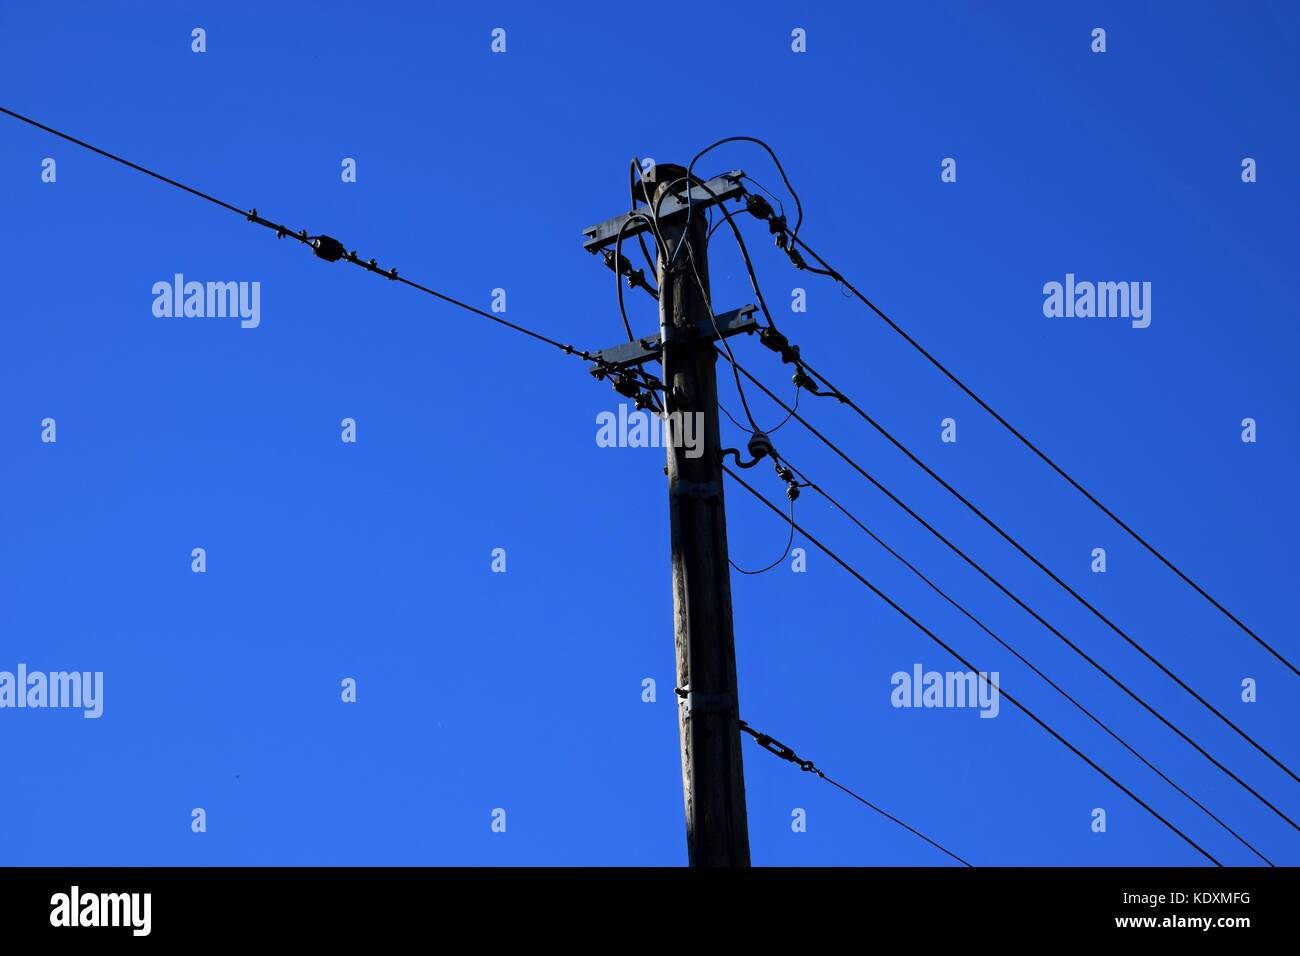 high power pole in the Country, power cable in autumn with colorful blue sky Stock Photo